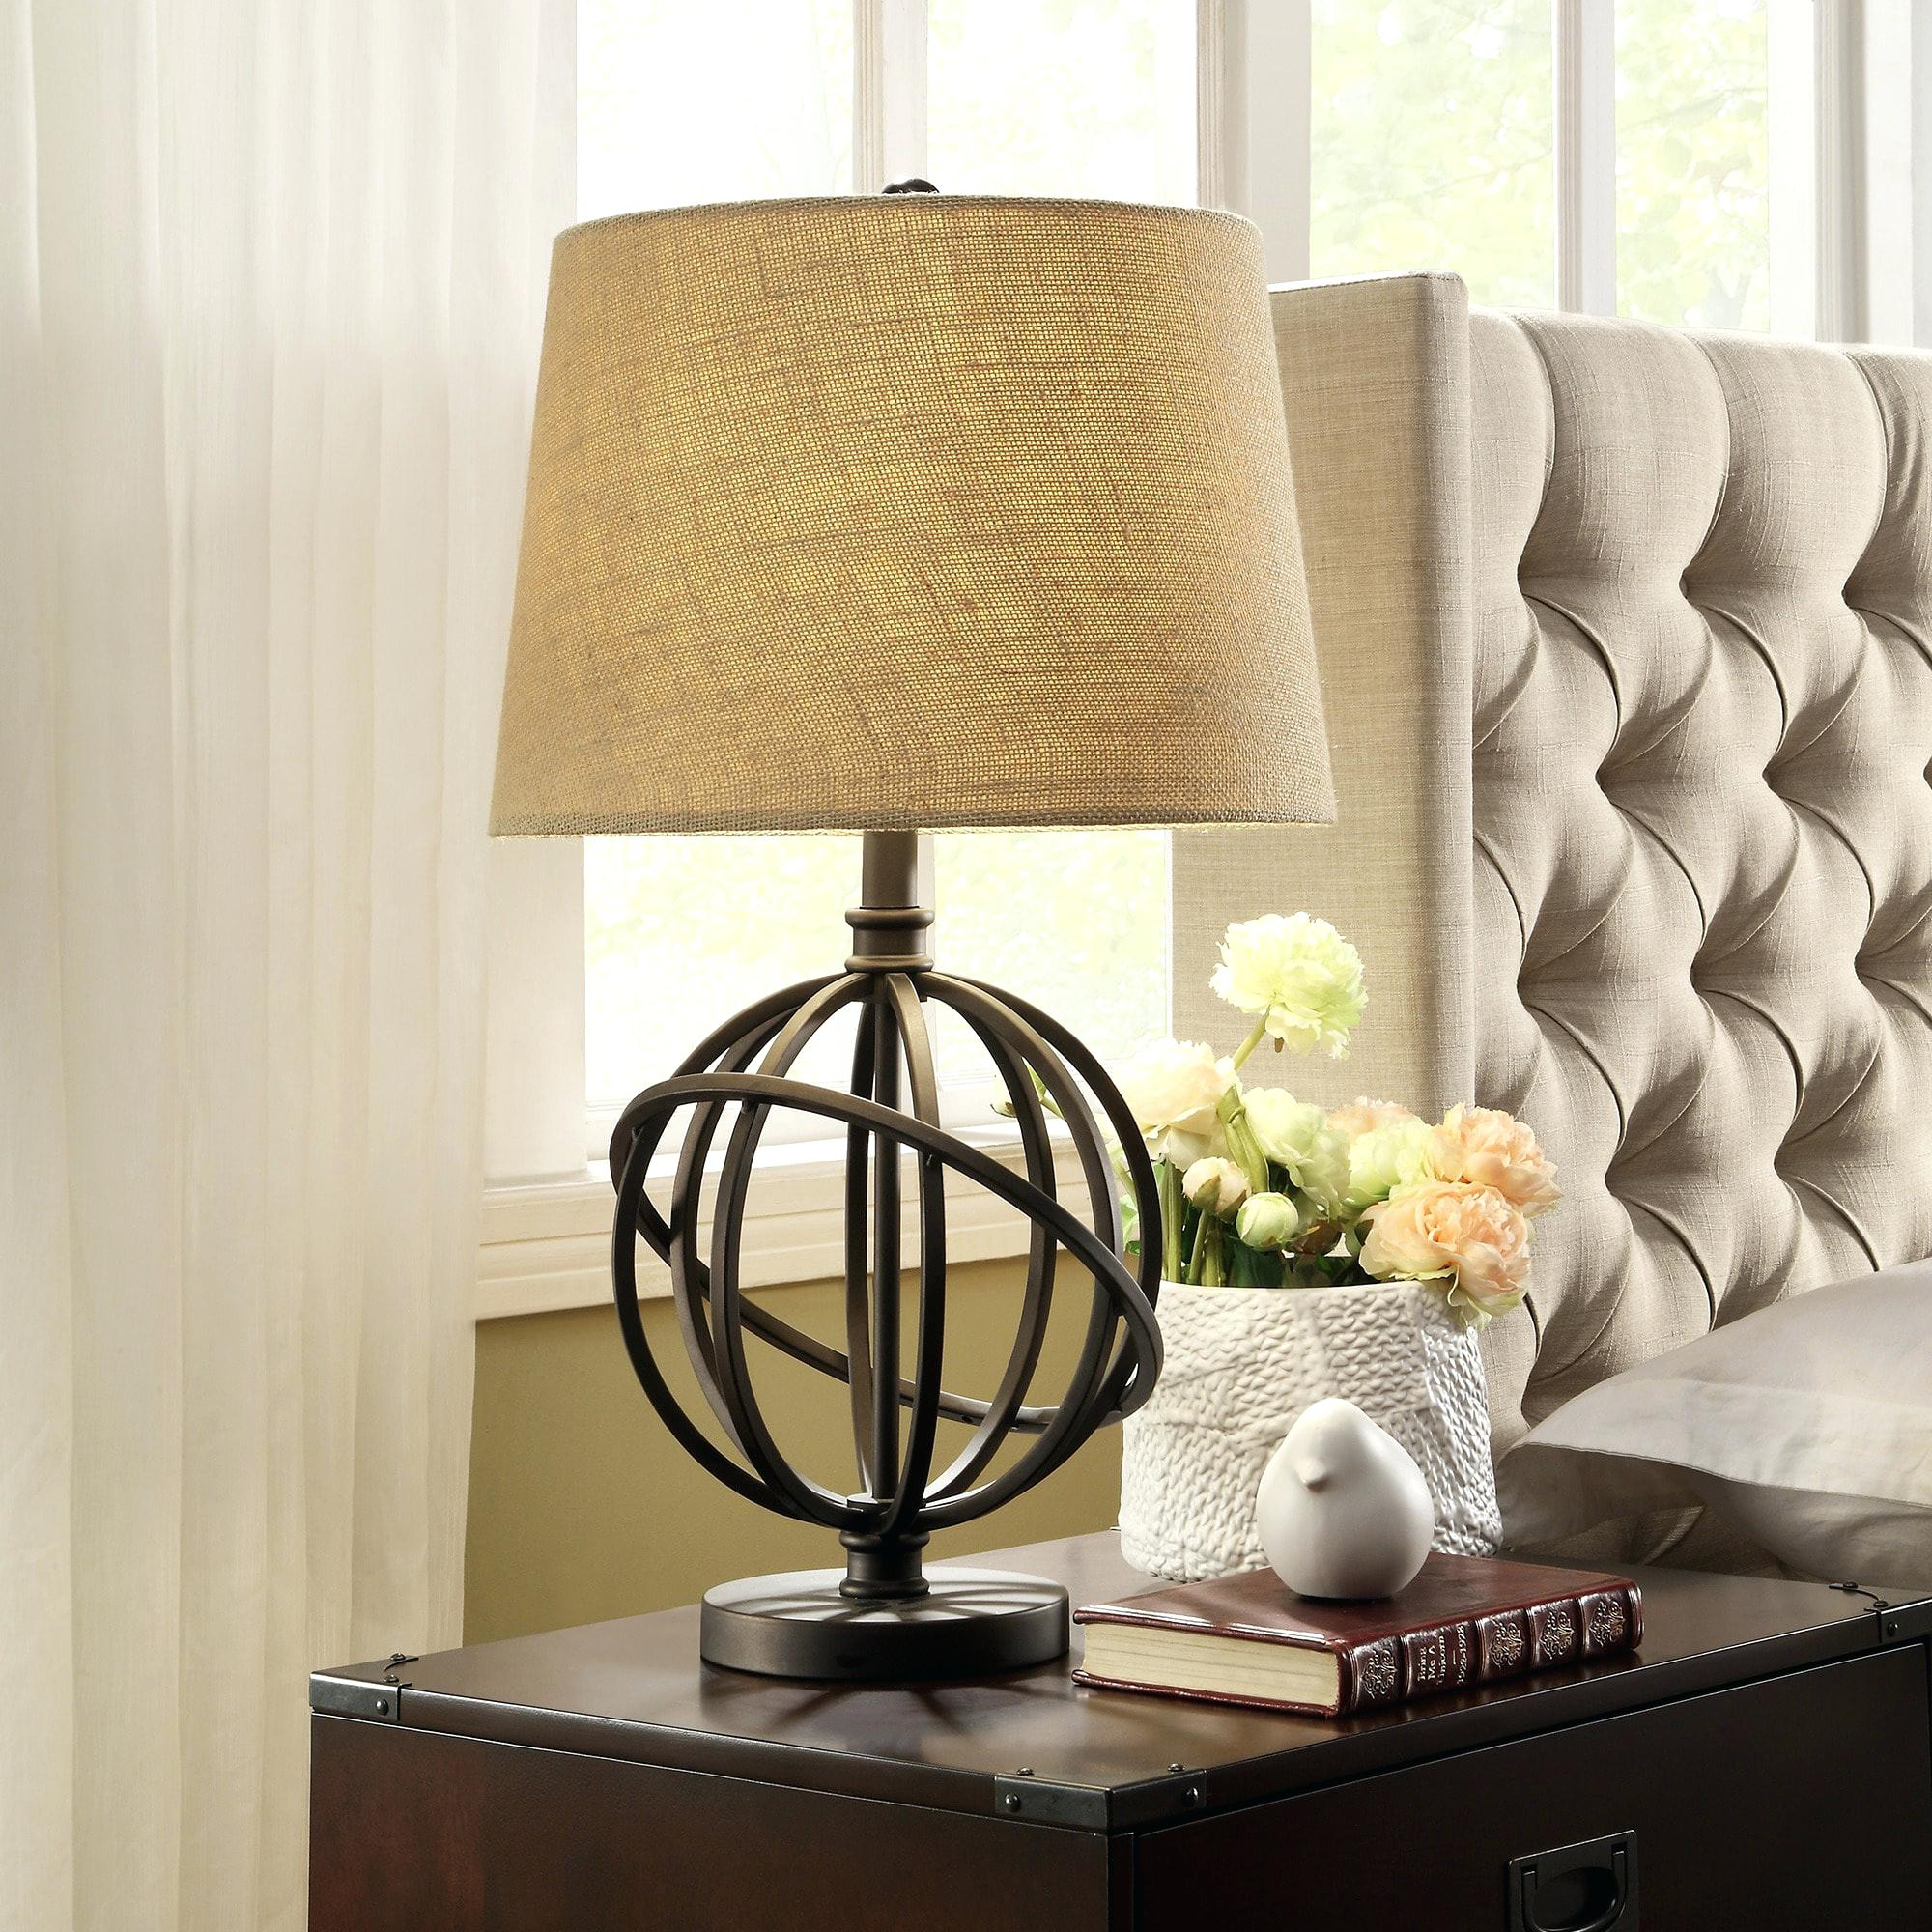 accent table lamps fitmitagnes info cooper antique bronze metal orbit globe light lamp inspire artisan small tiny telephone american heritage furniture ashley outdoor plastic